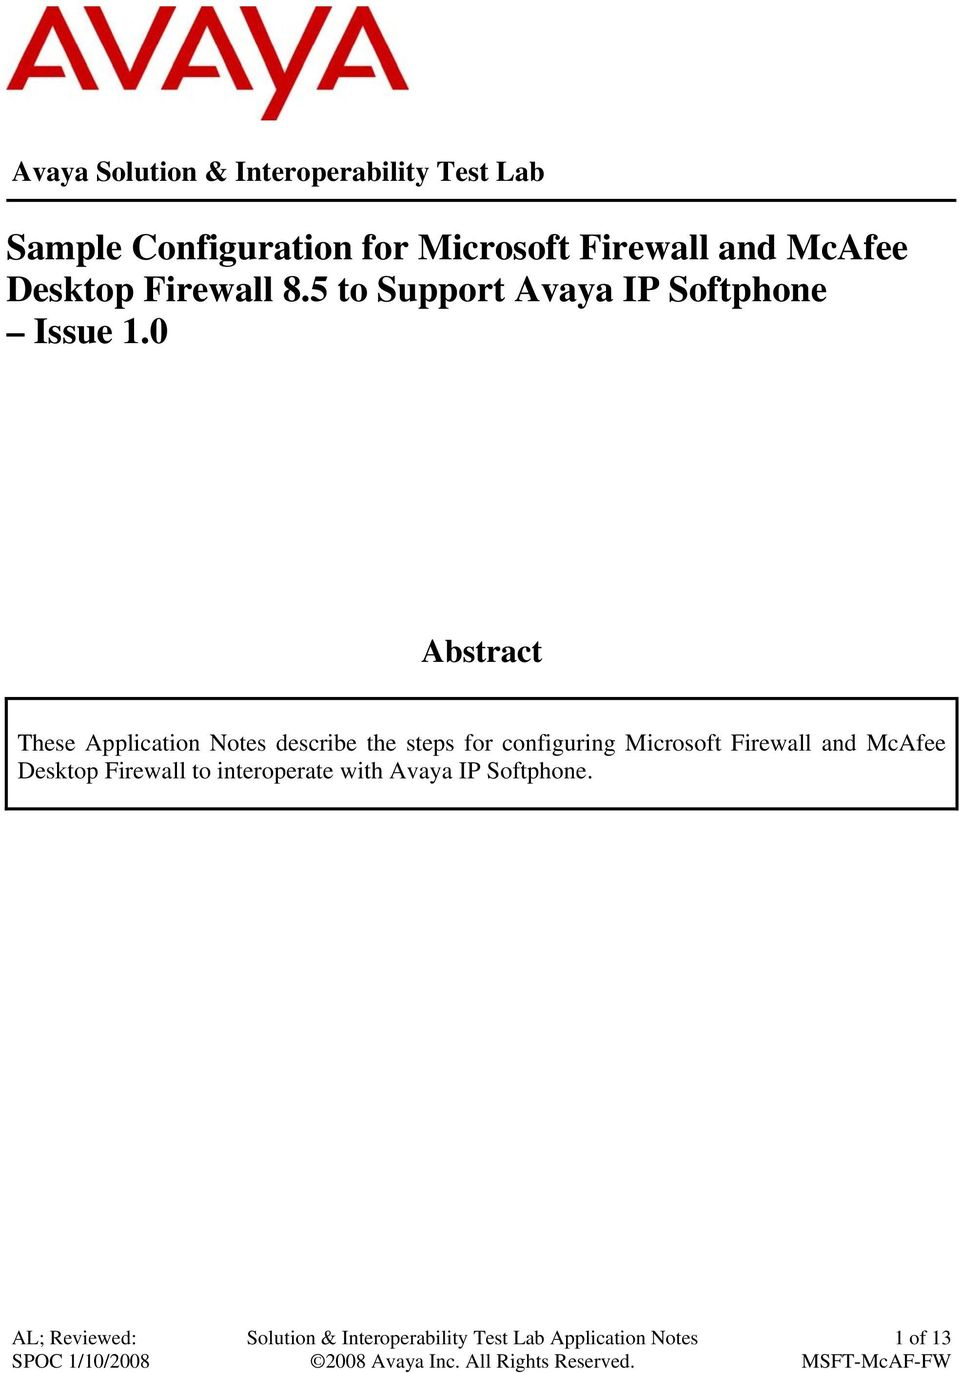 Sample Configuration for Microsoft Firewall and McAfee